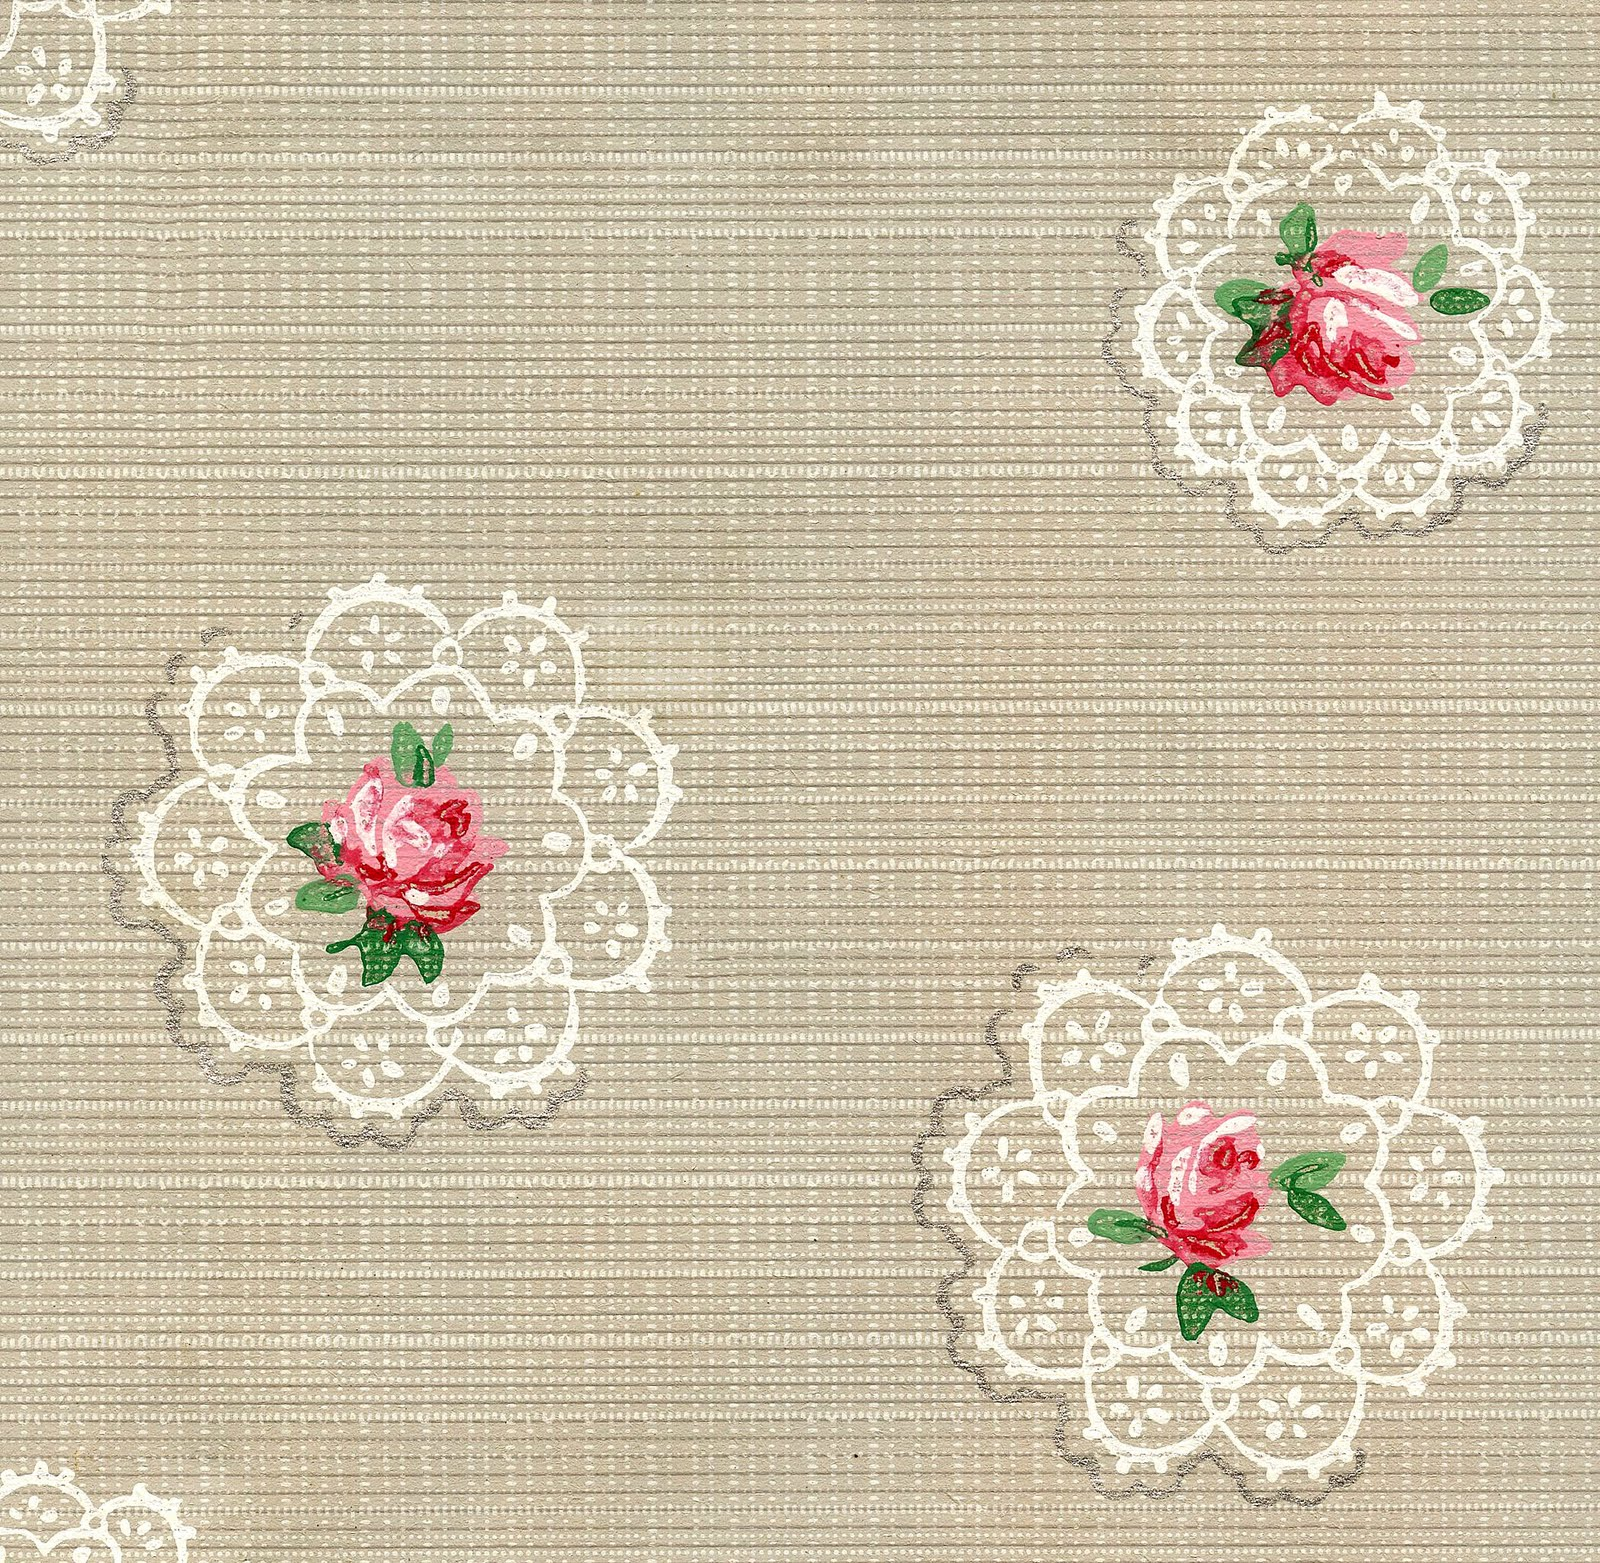 I had a request for Vintage Wallpaper and Doilies and as it turns out,